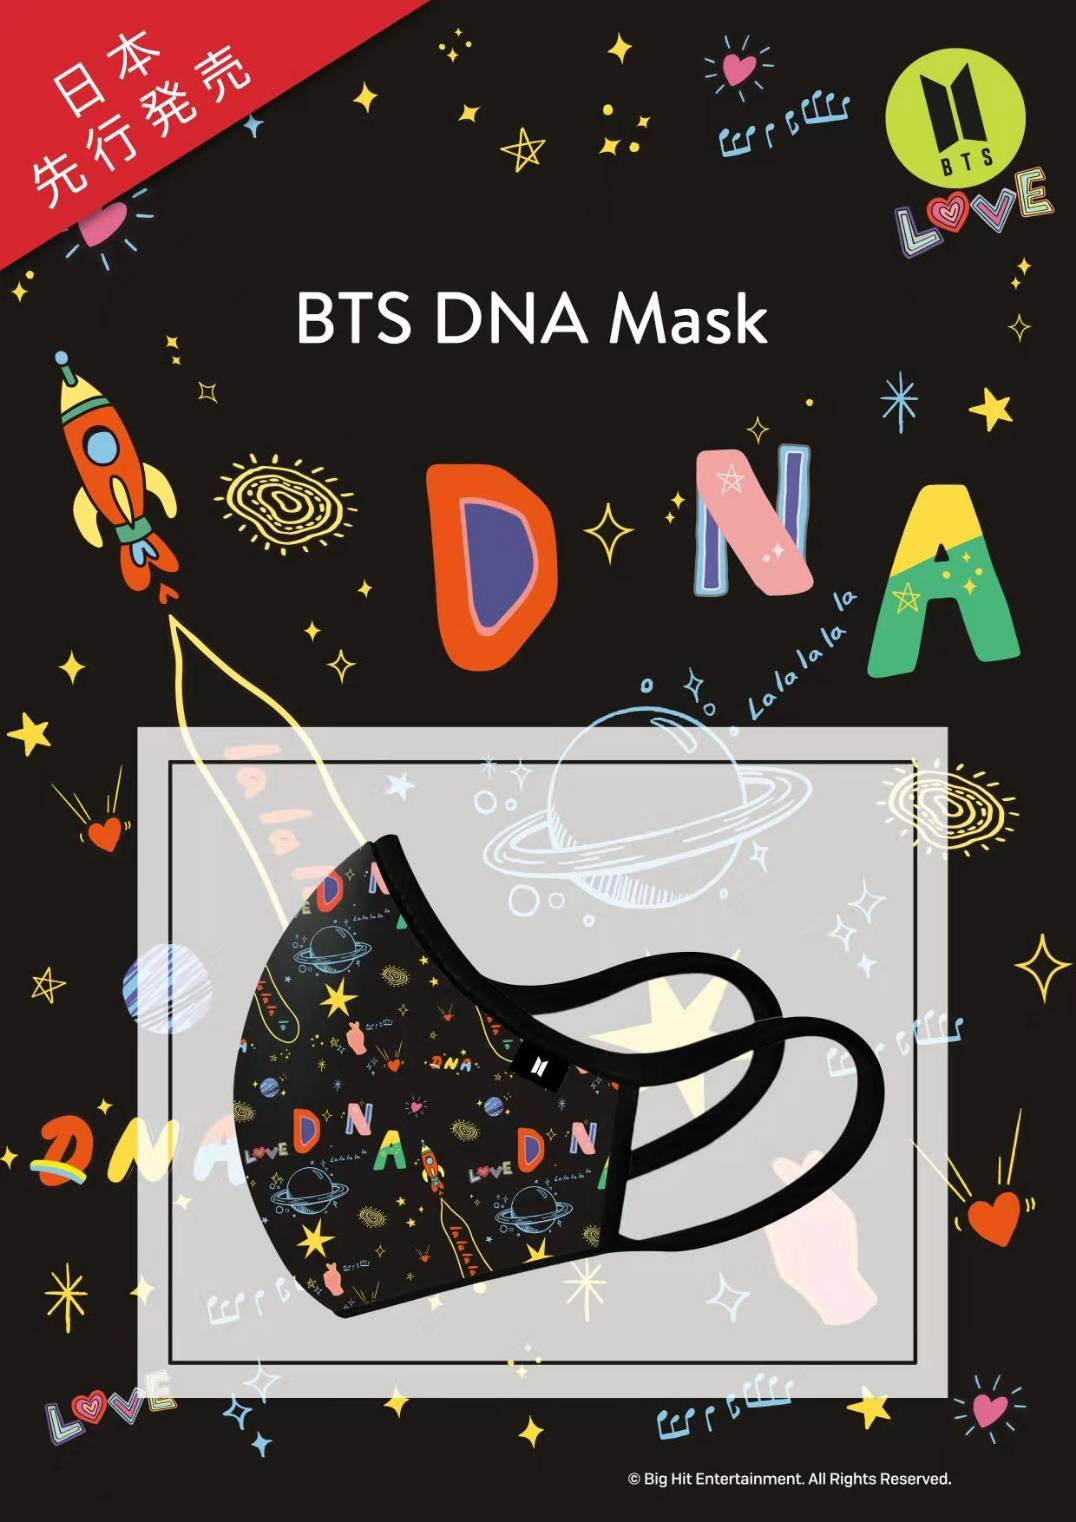 BTS mask Manufactured by MEO(DNA ブラック)